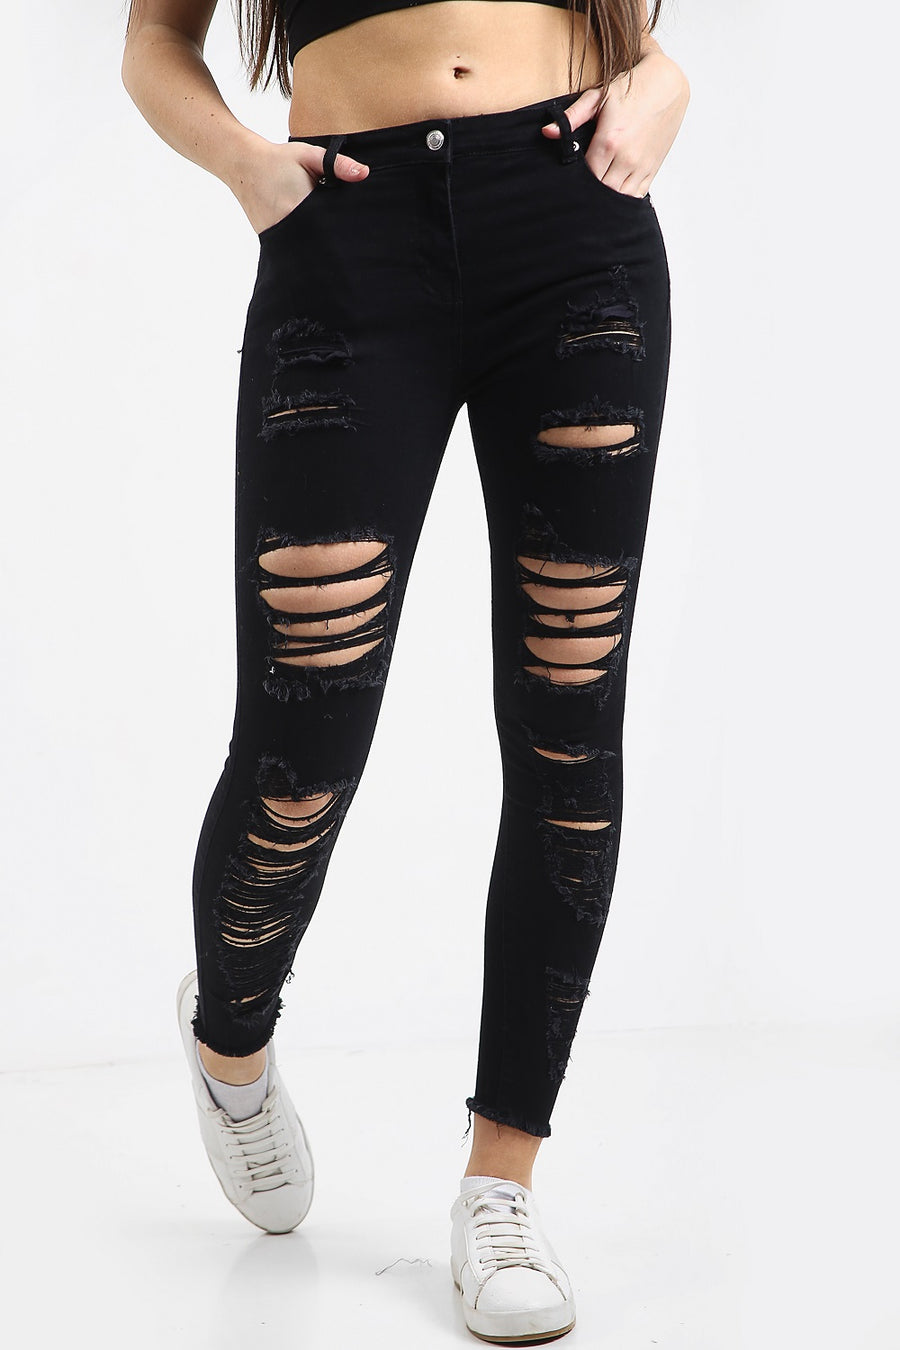 Black Multi Slash Distressed Thread High Waist Jeans - Nyah